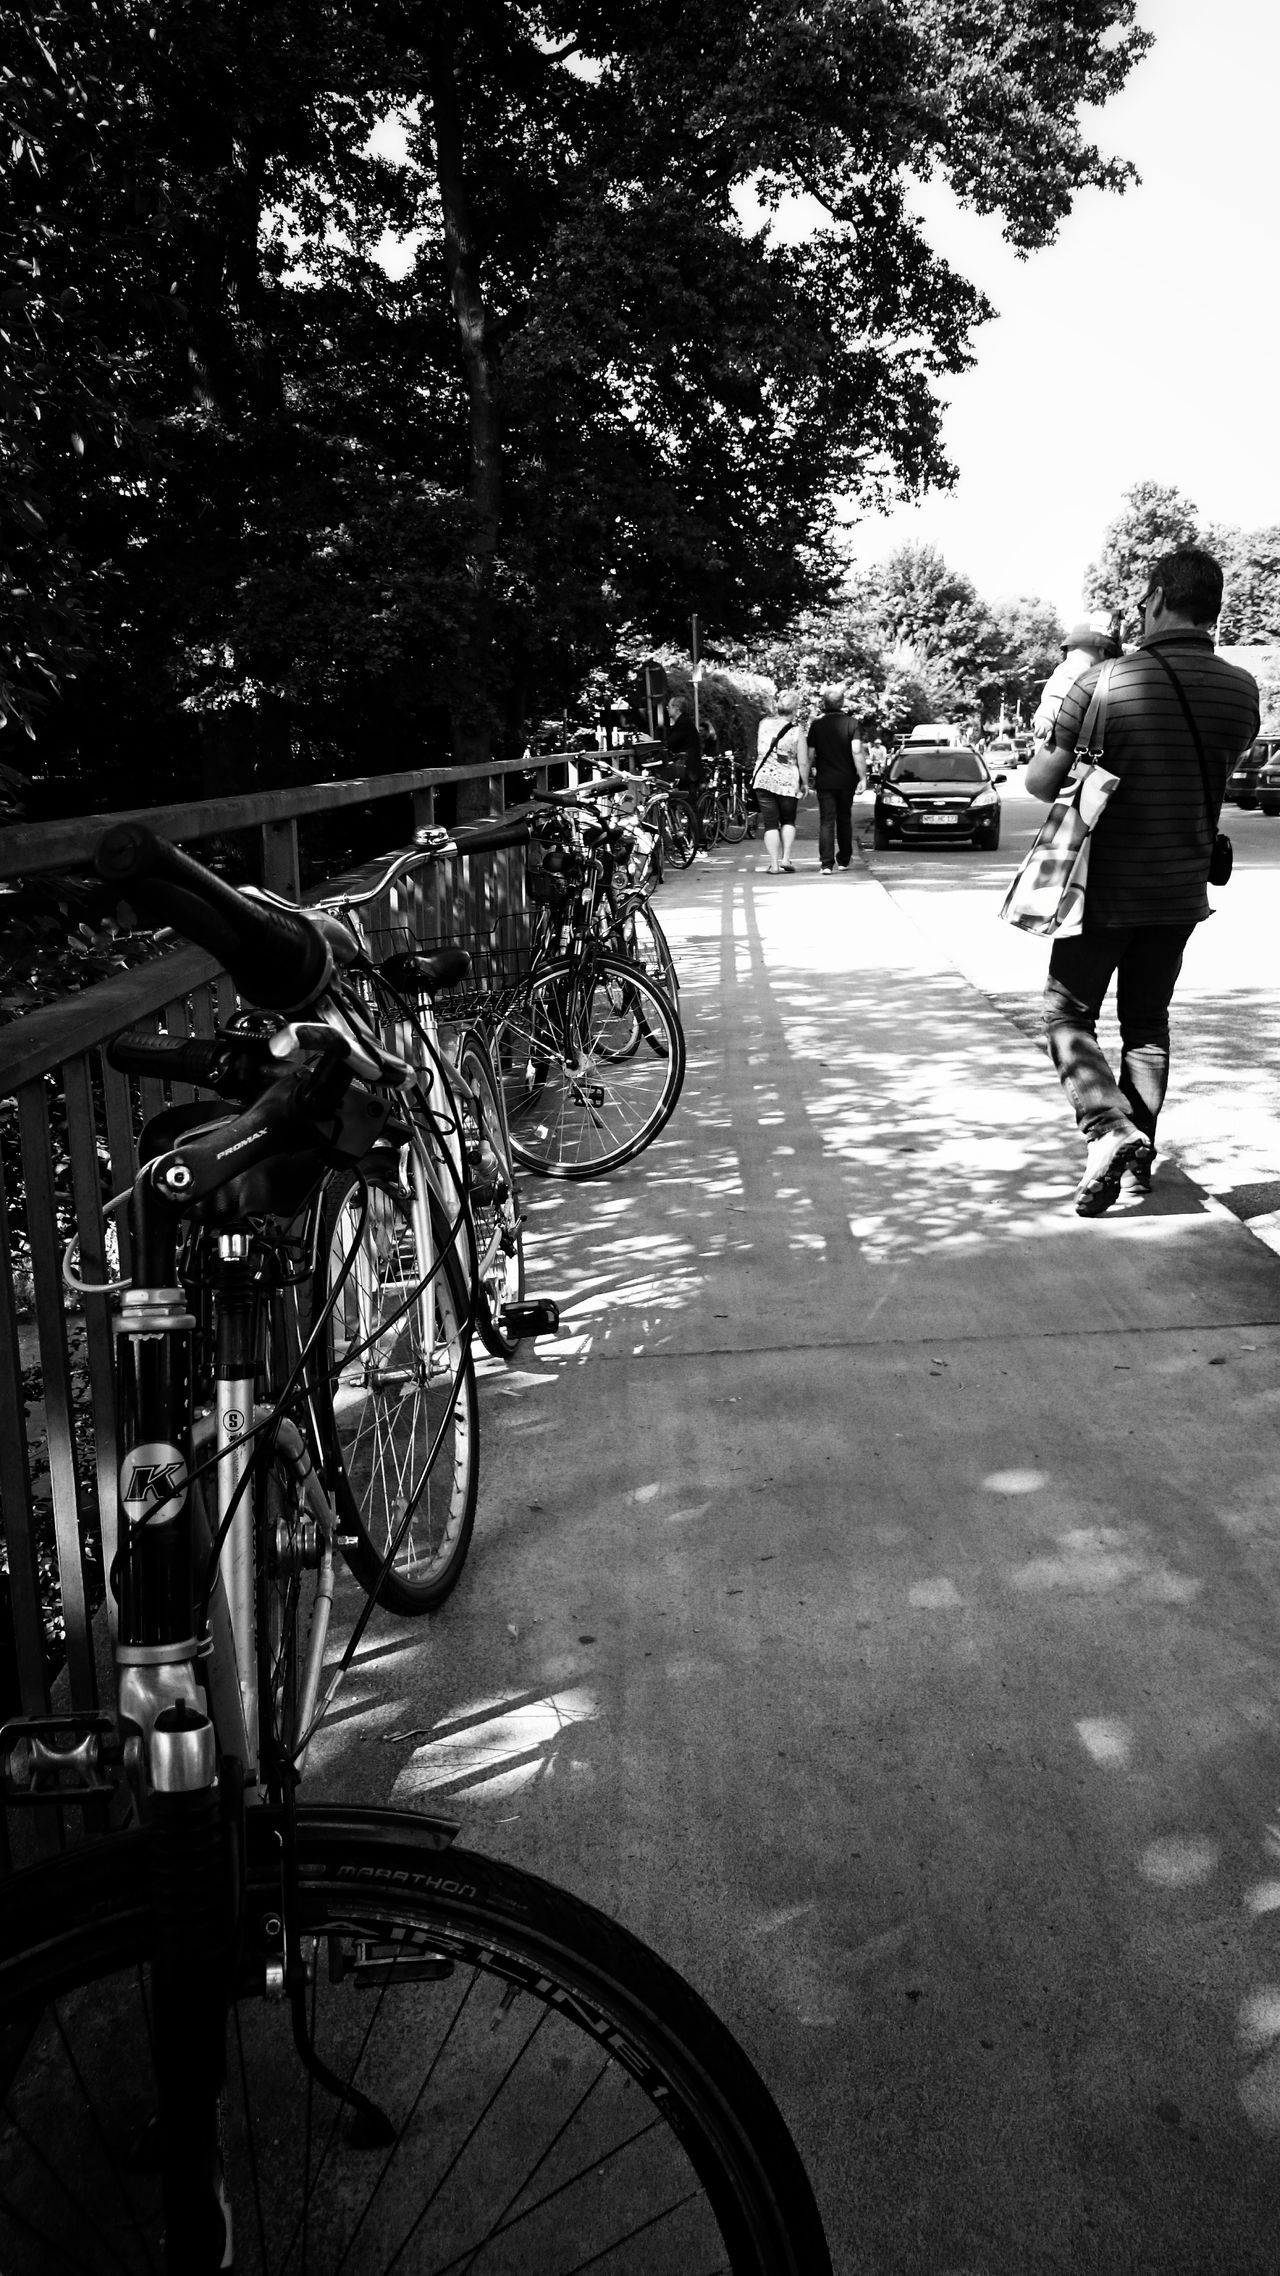 Transportation Bicycle Mode Of Transport Land Vehicle Tree Parked Outdoors Lifestyles Day Fahter Bicycle Parking Monochrome Photography Monochrome_life Street Streetphotography From My Point Of View EyeEm Best Shots